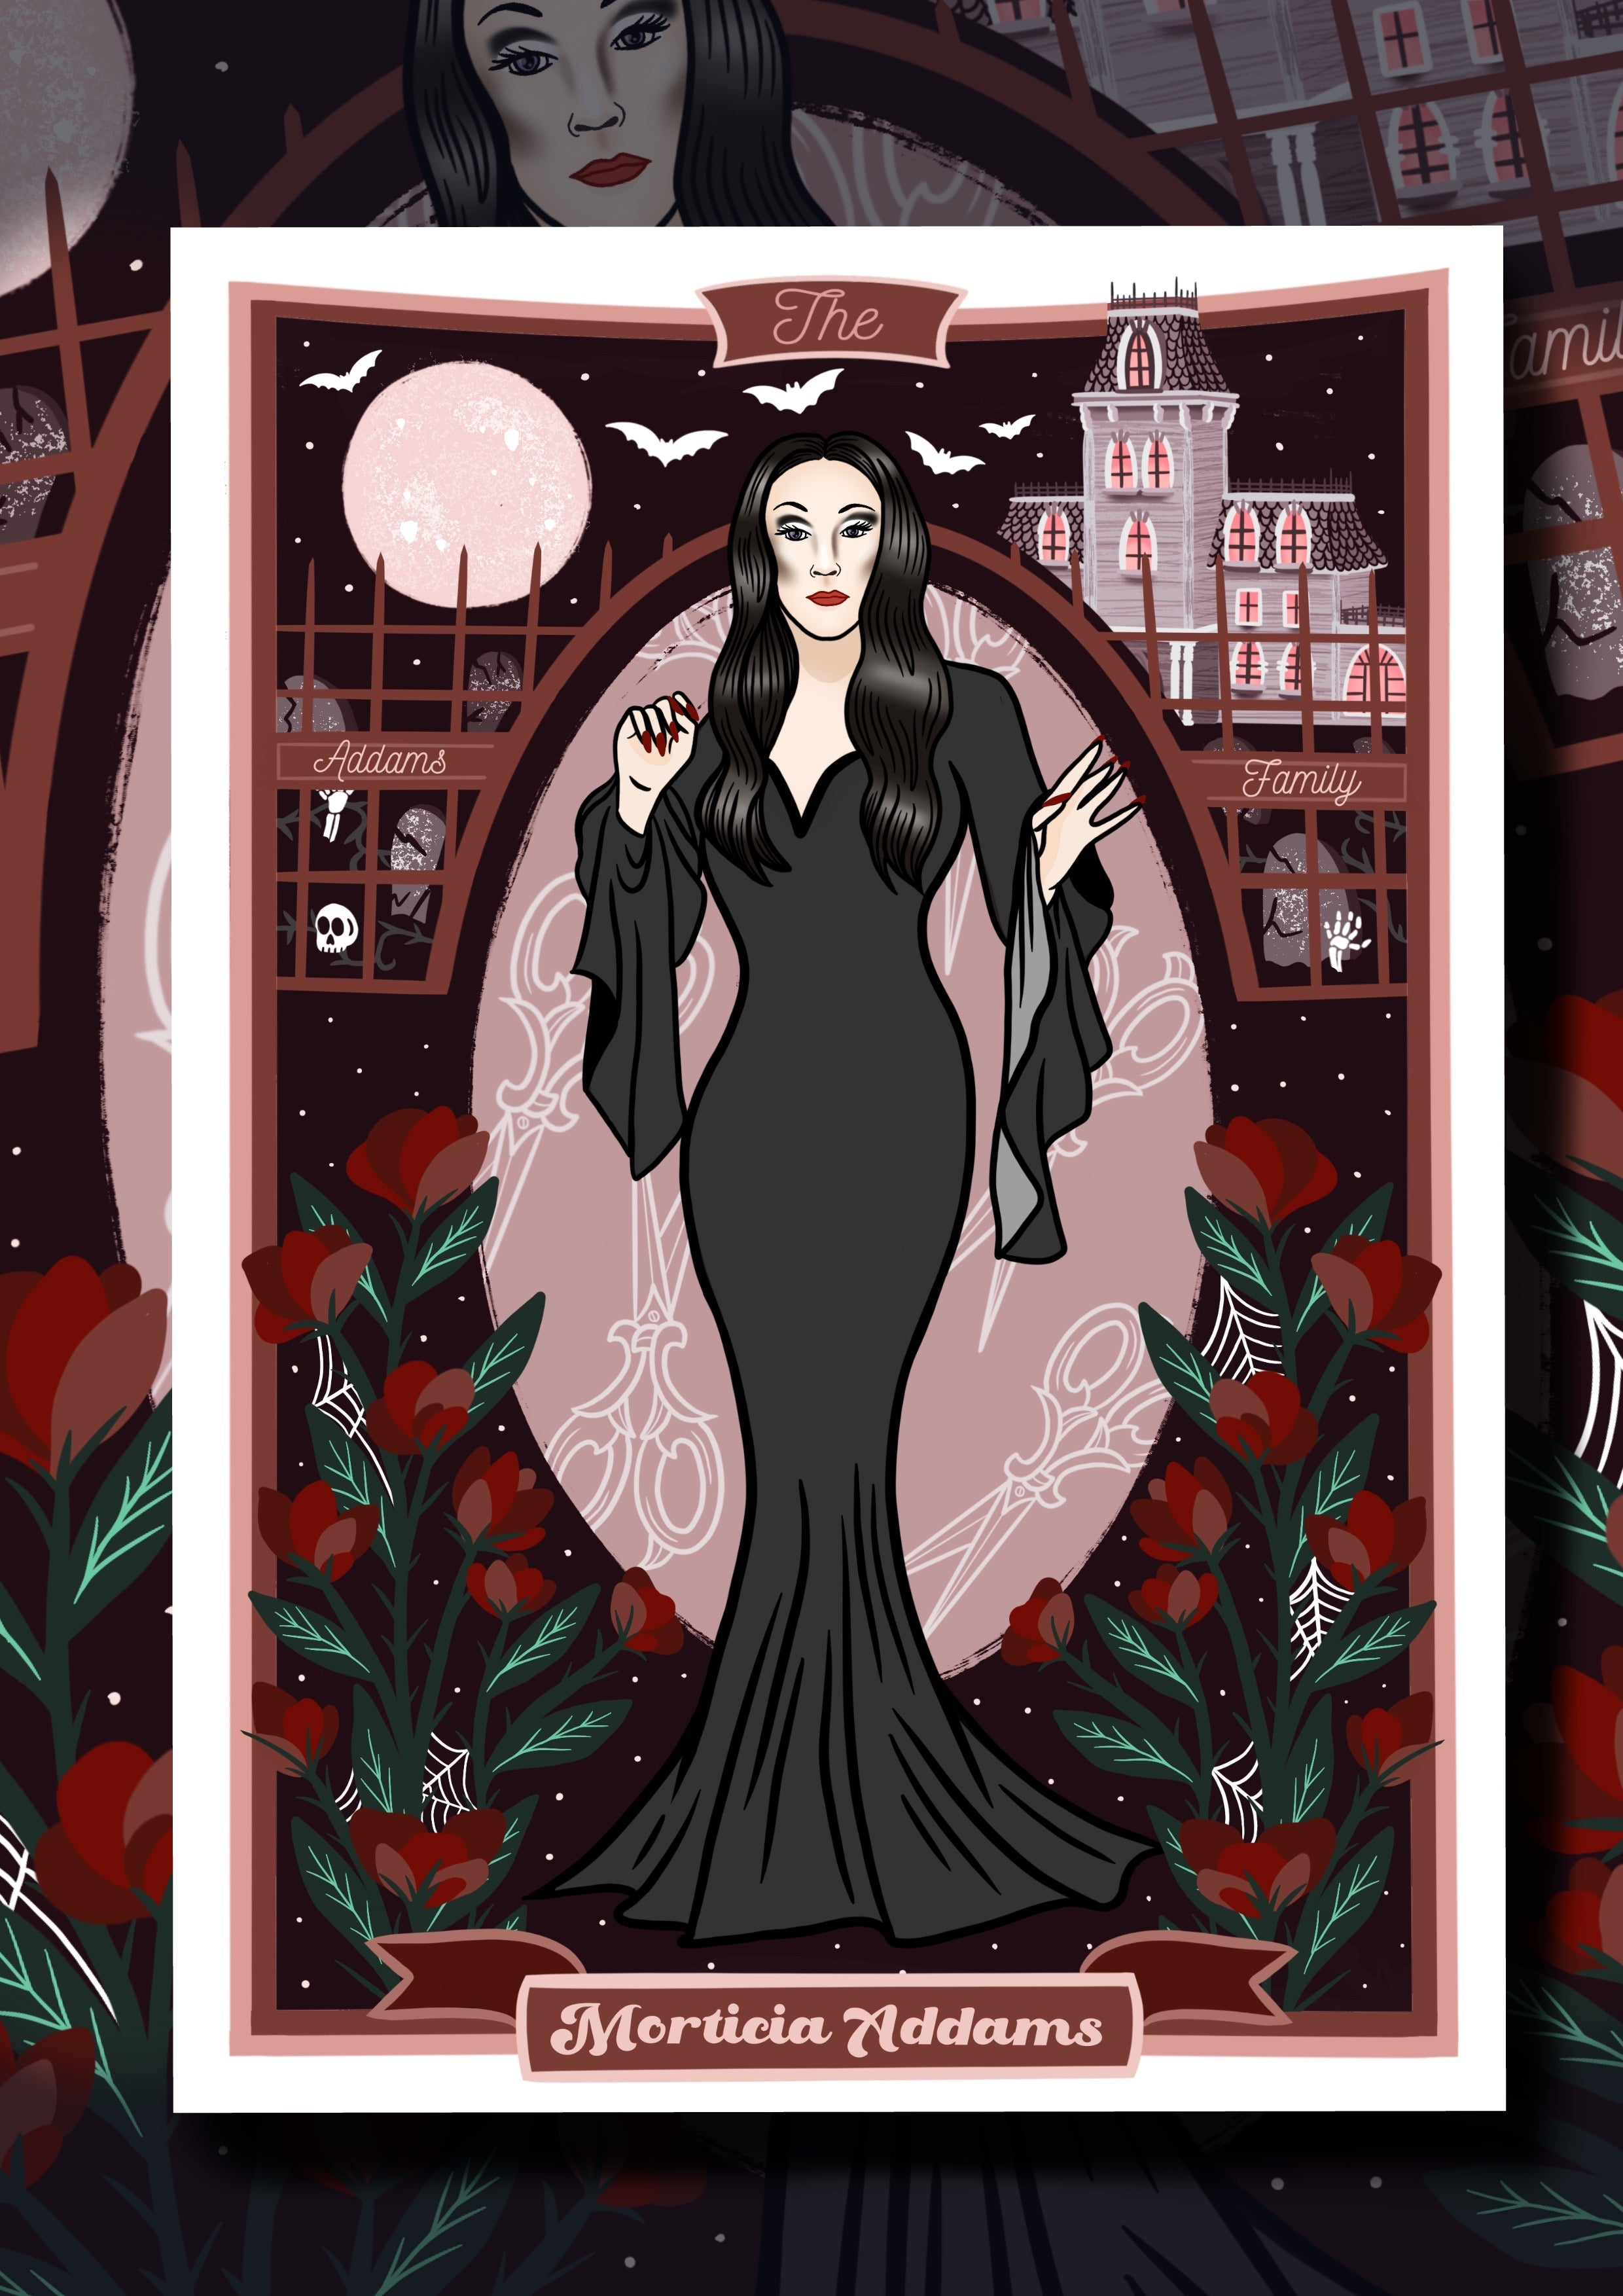 Morticia Addams The Addams Family Values Print